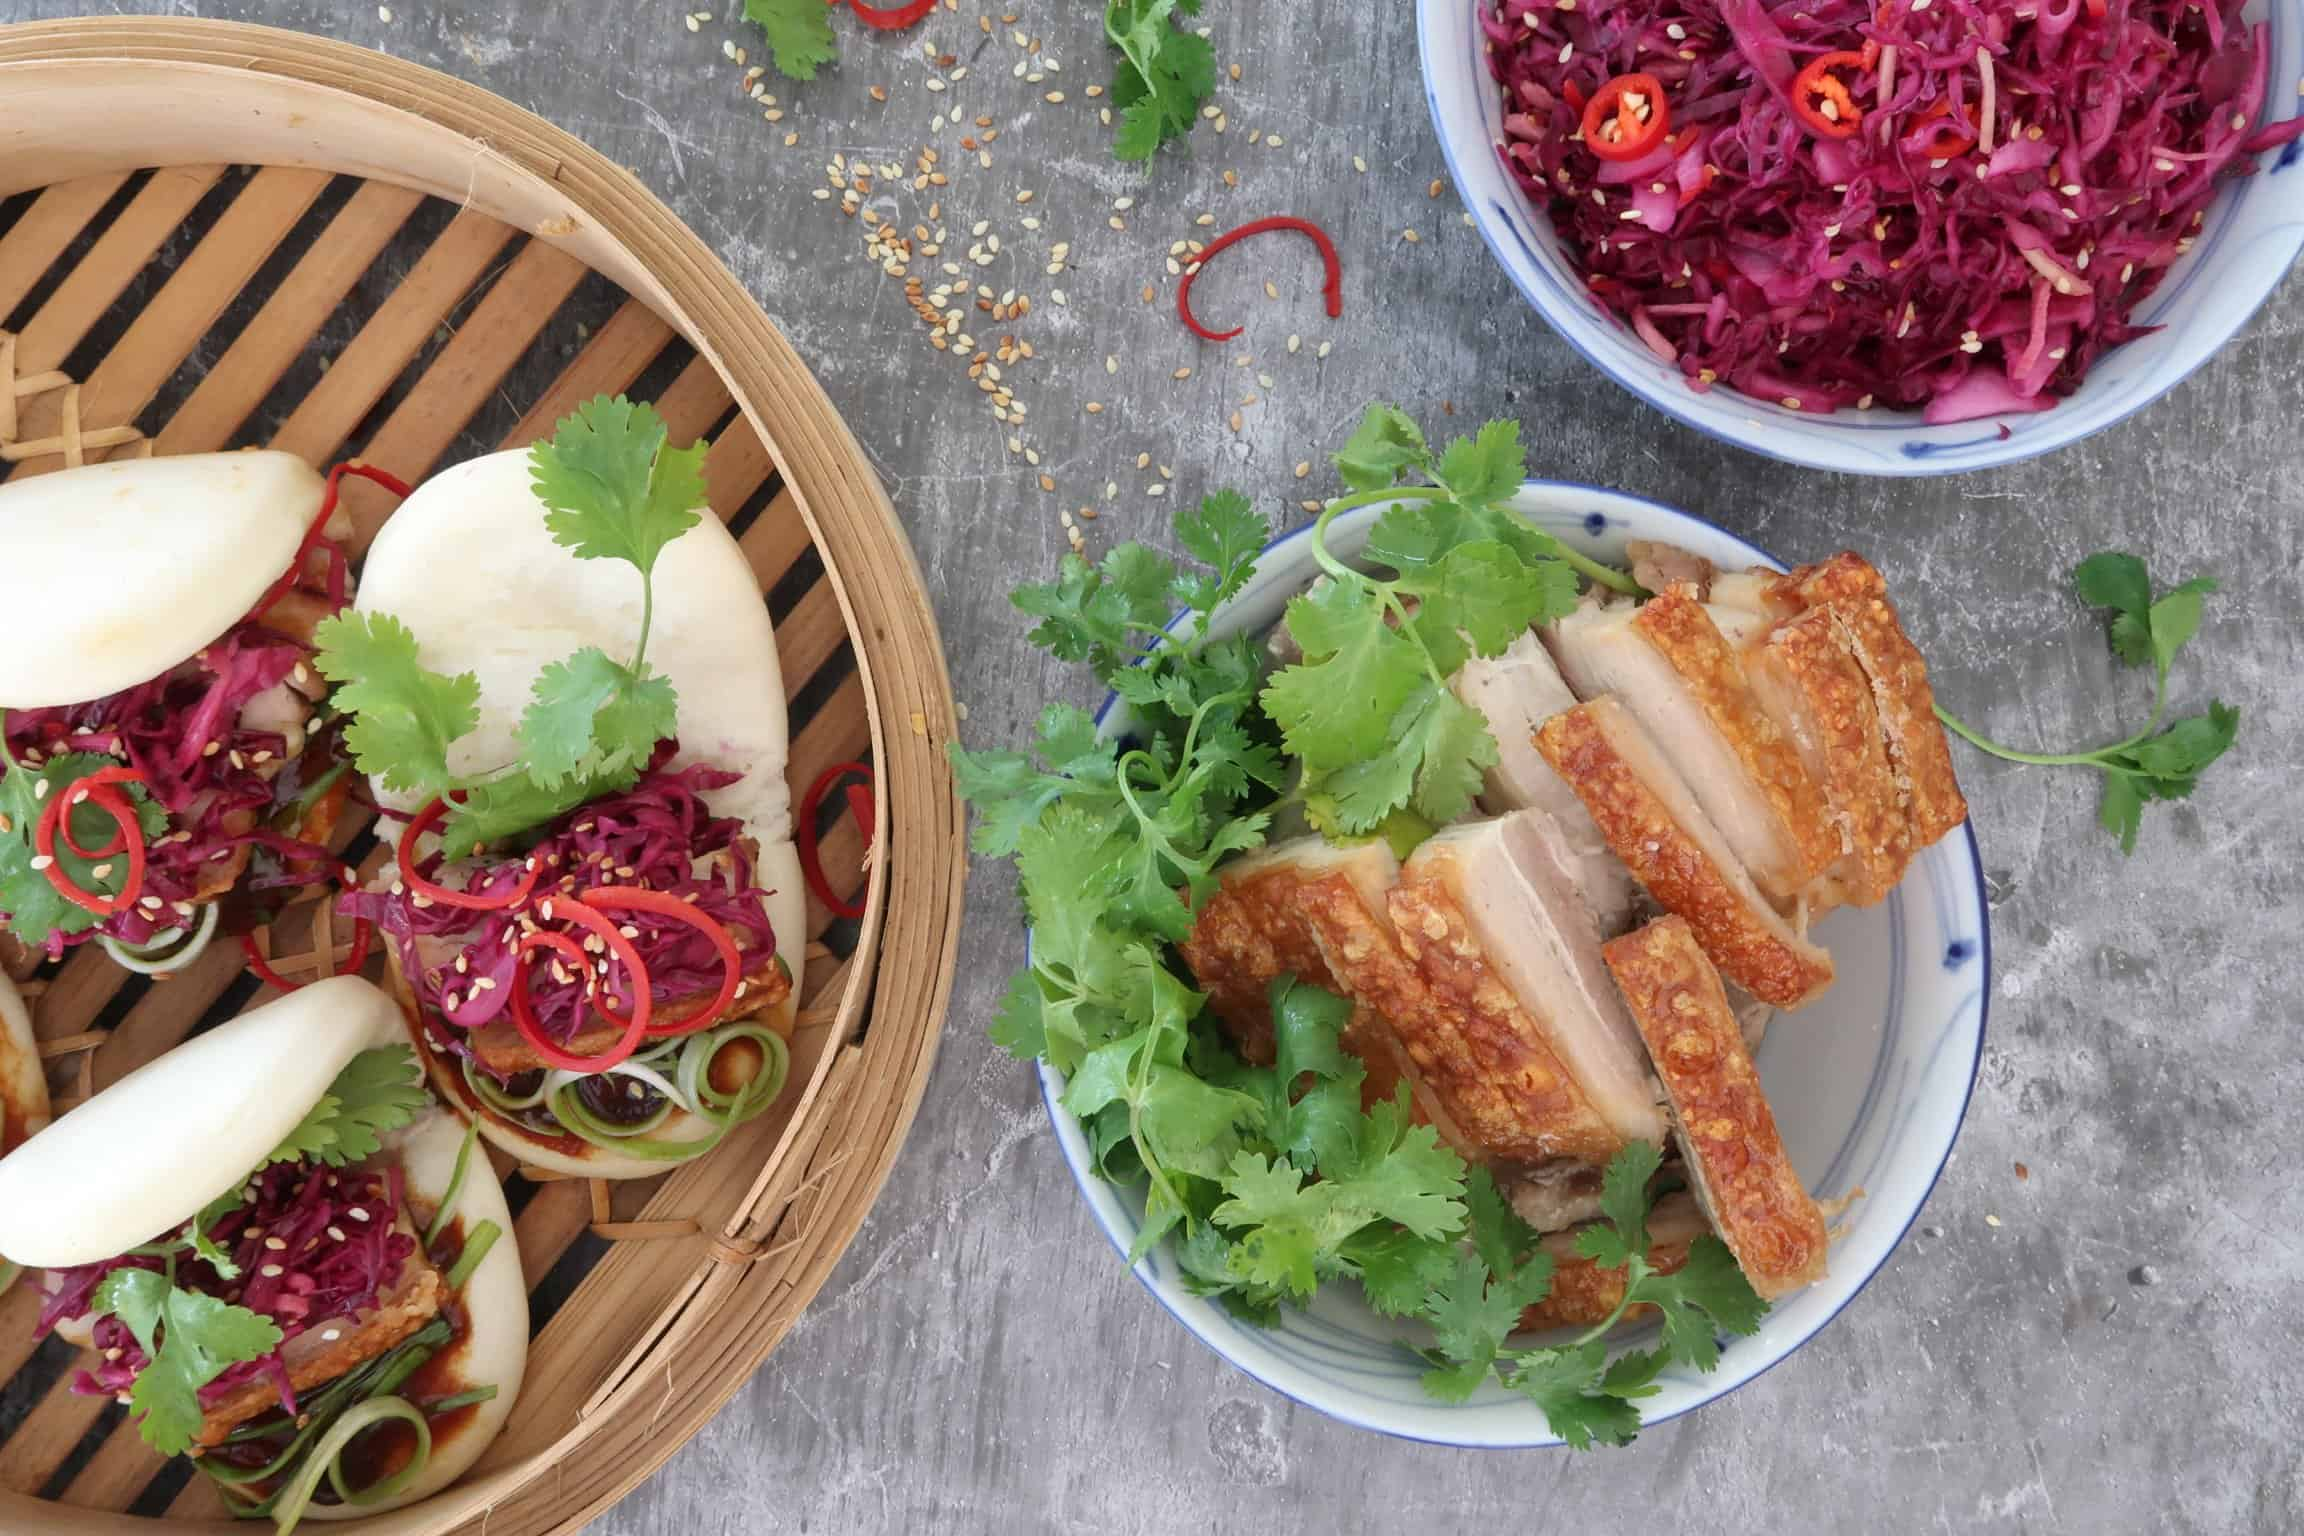 Chinese Pickled Red Cabbage served in bao buns in a bmboo steamer basket and a bowl of crispy porkbelly